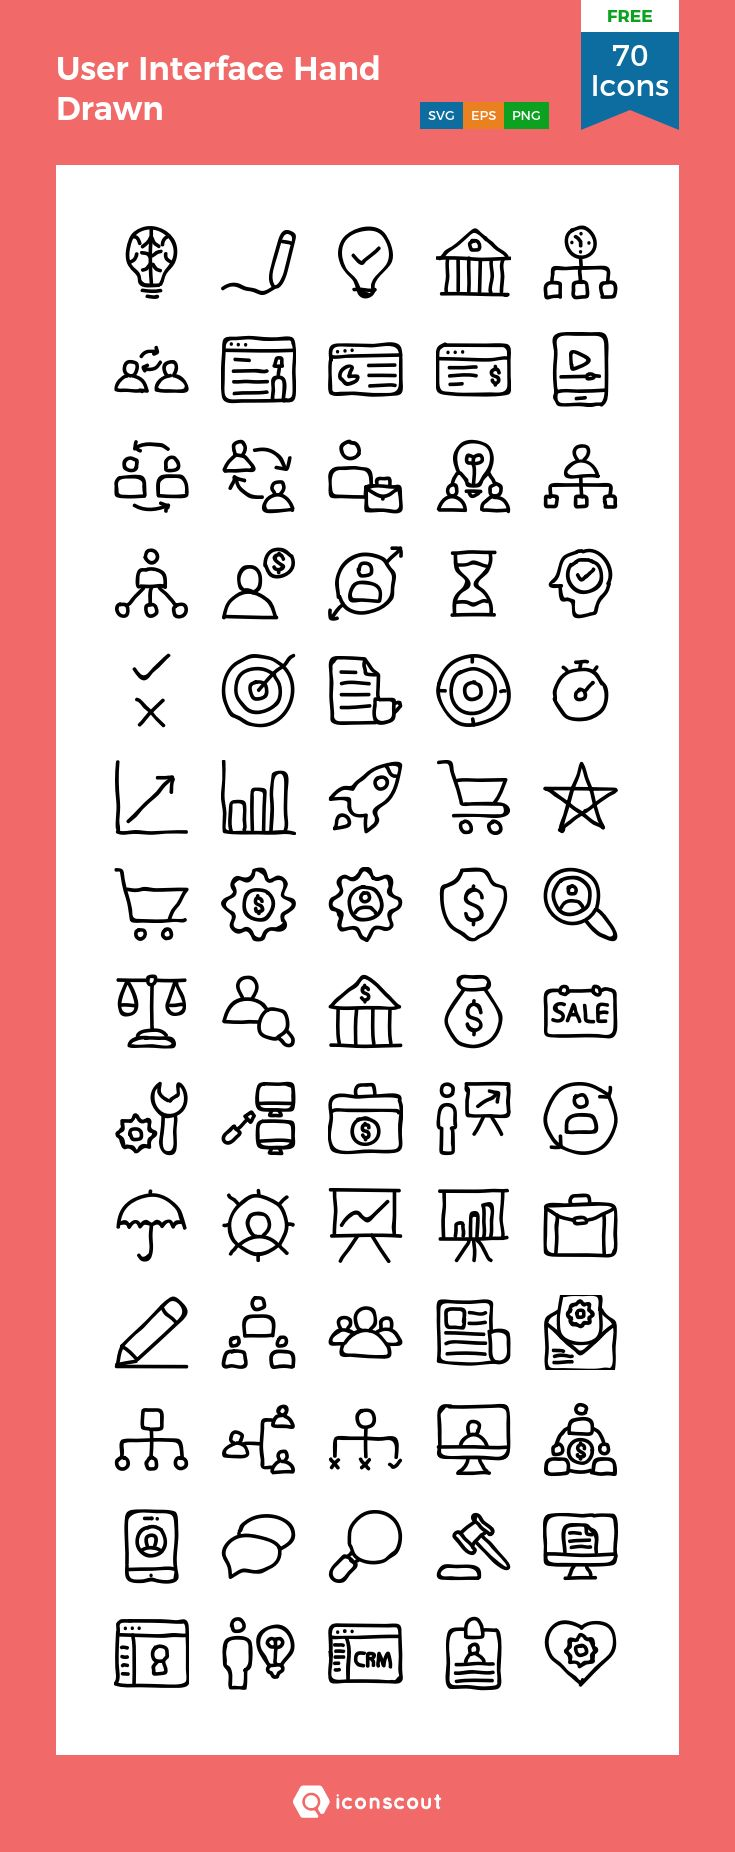 Download User Interface Hand Drawn Icon pack Available